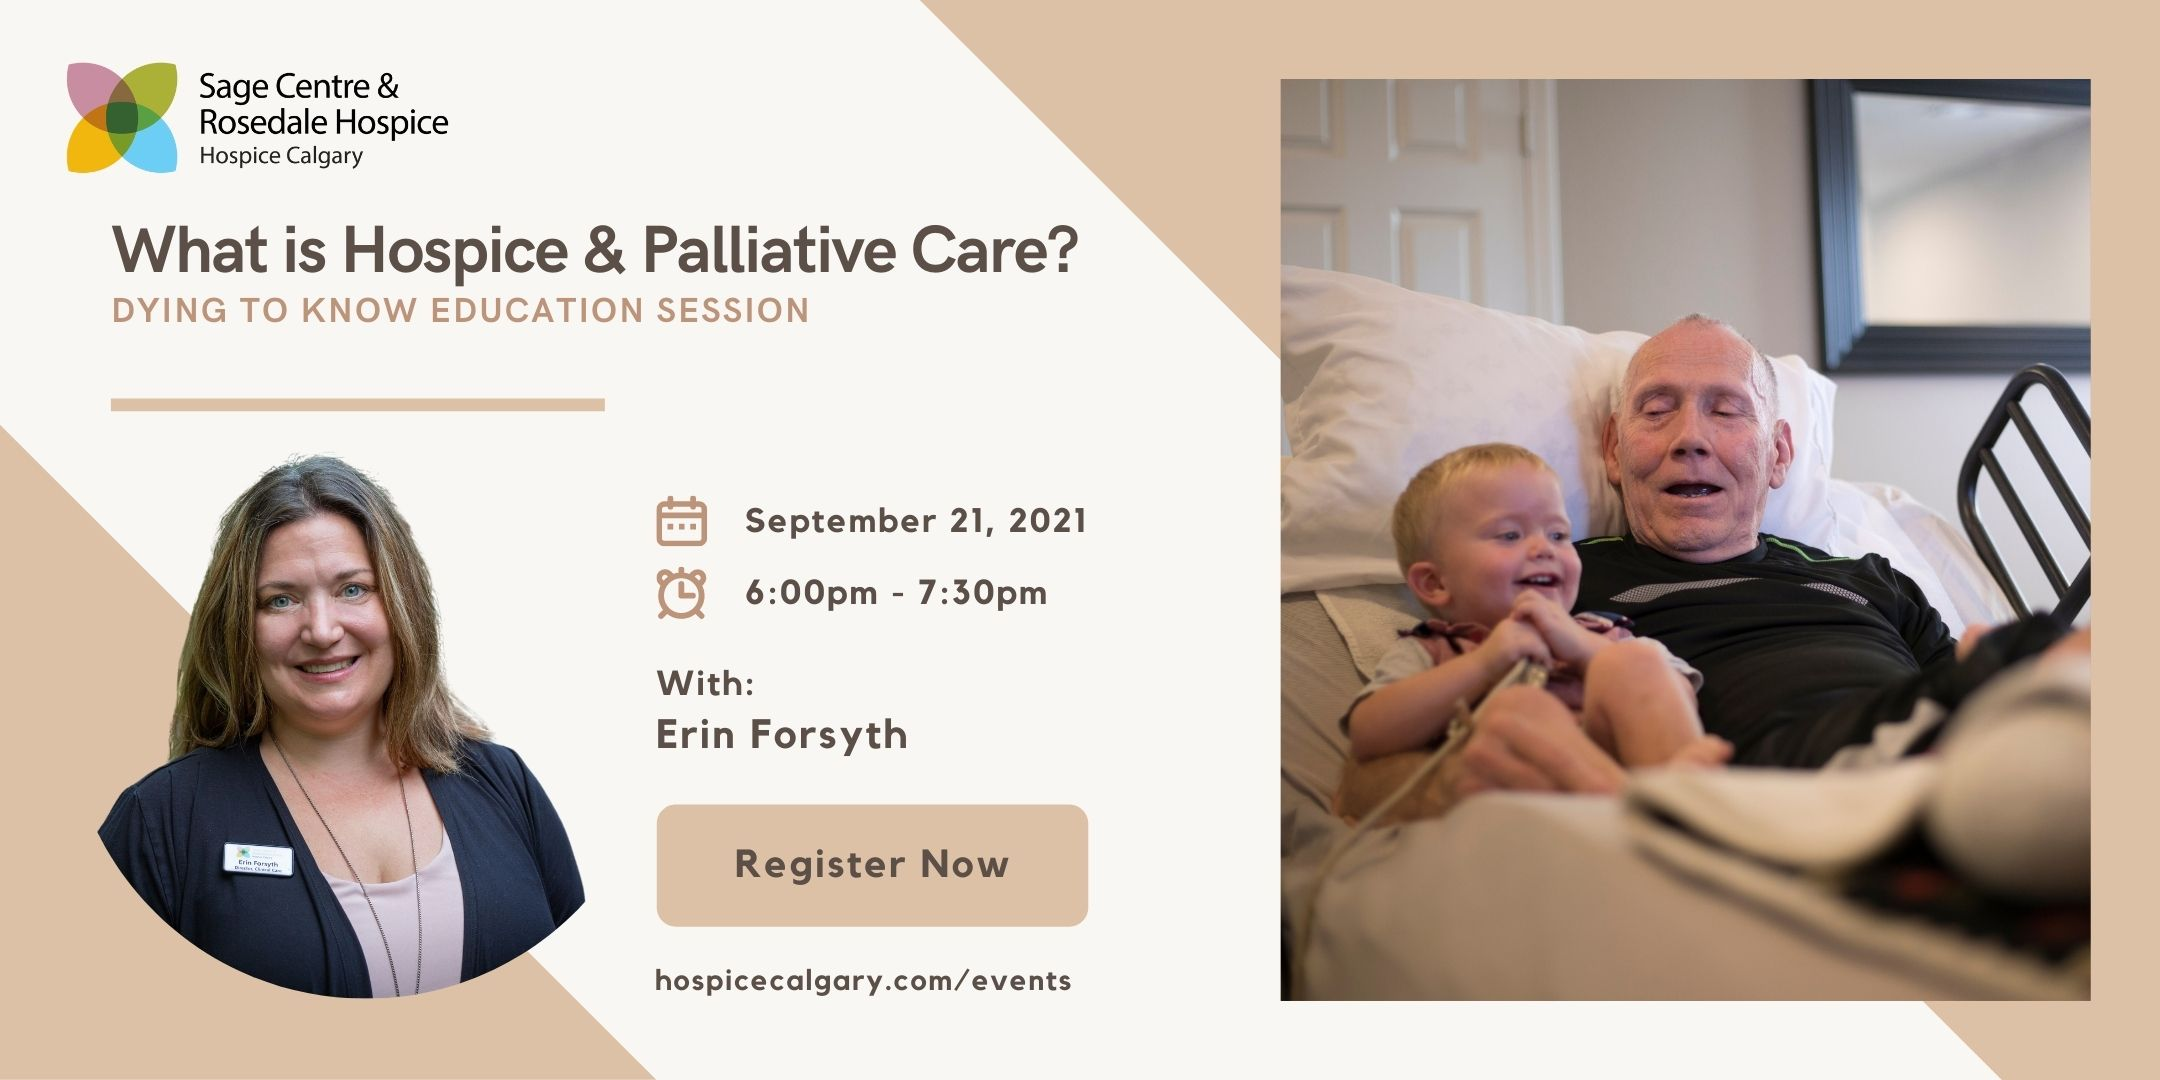 Dying to Know - What is Hospice and Palliative Care?